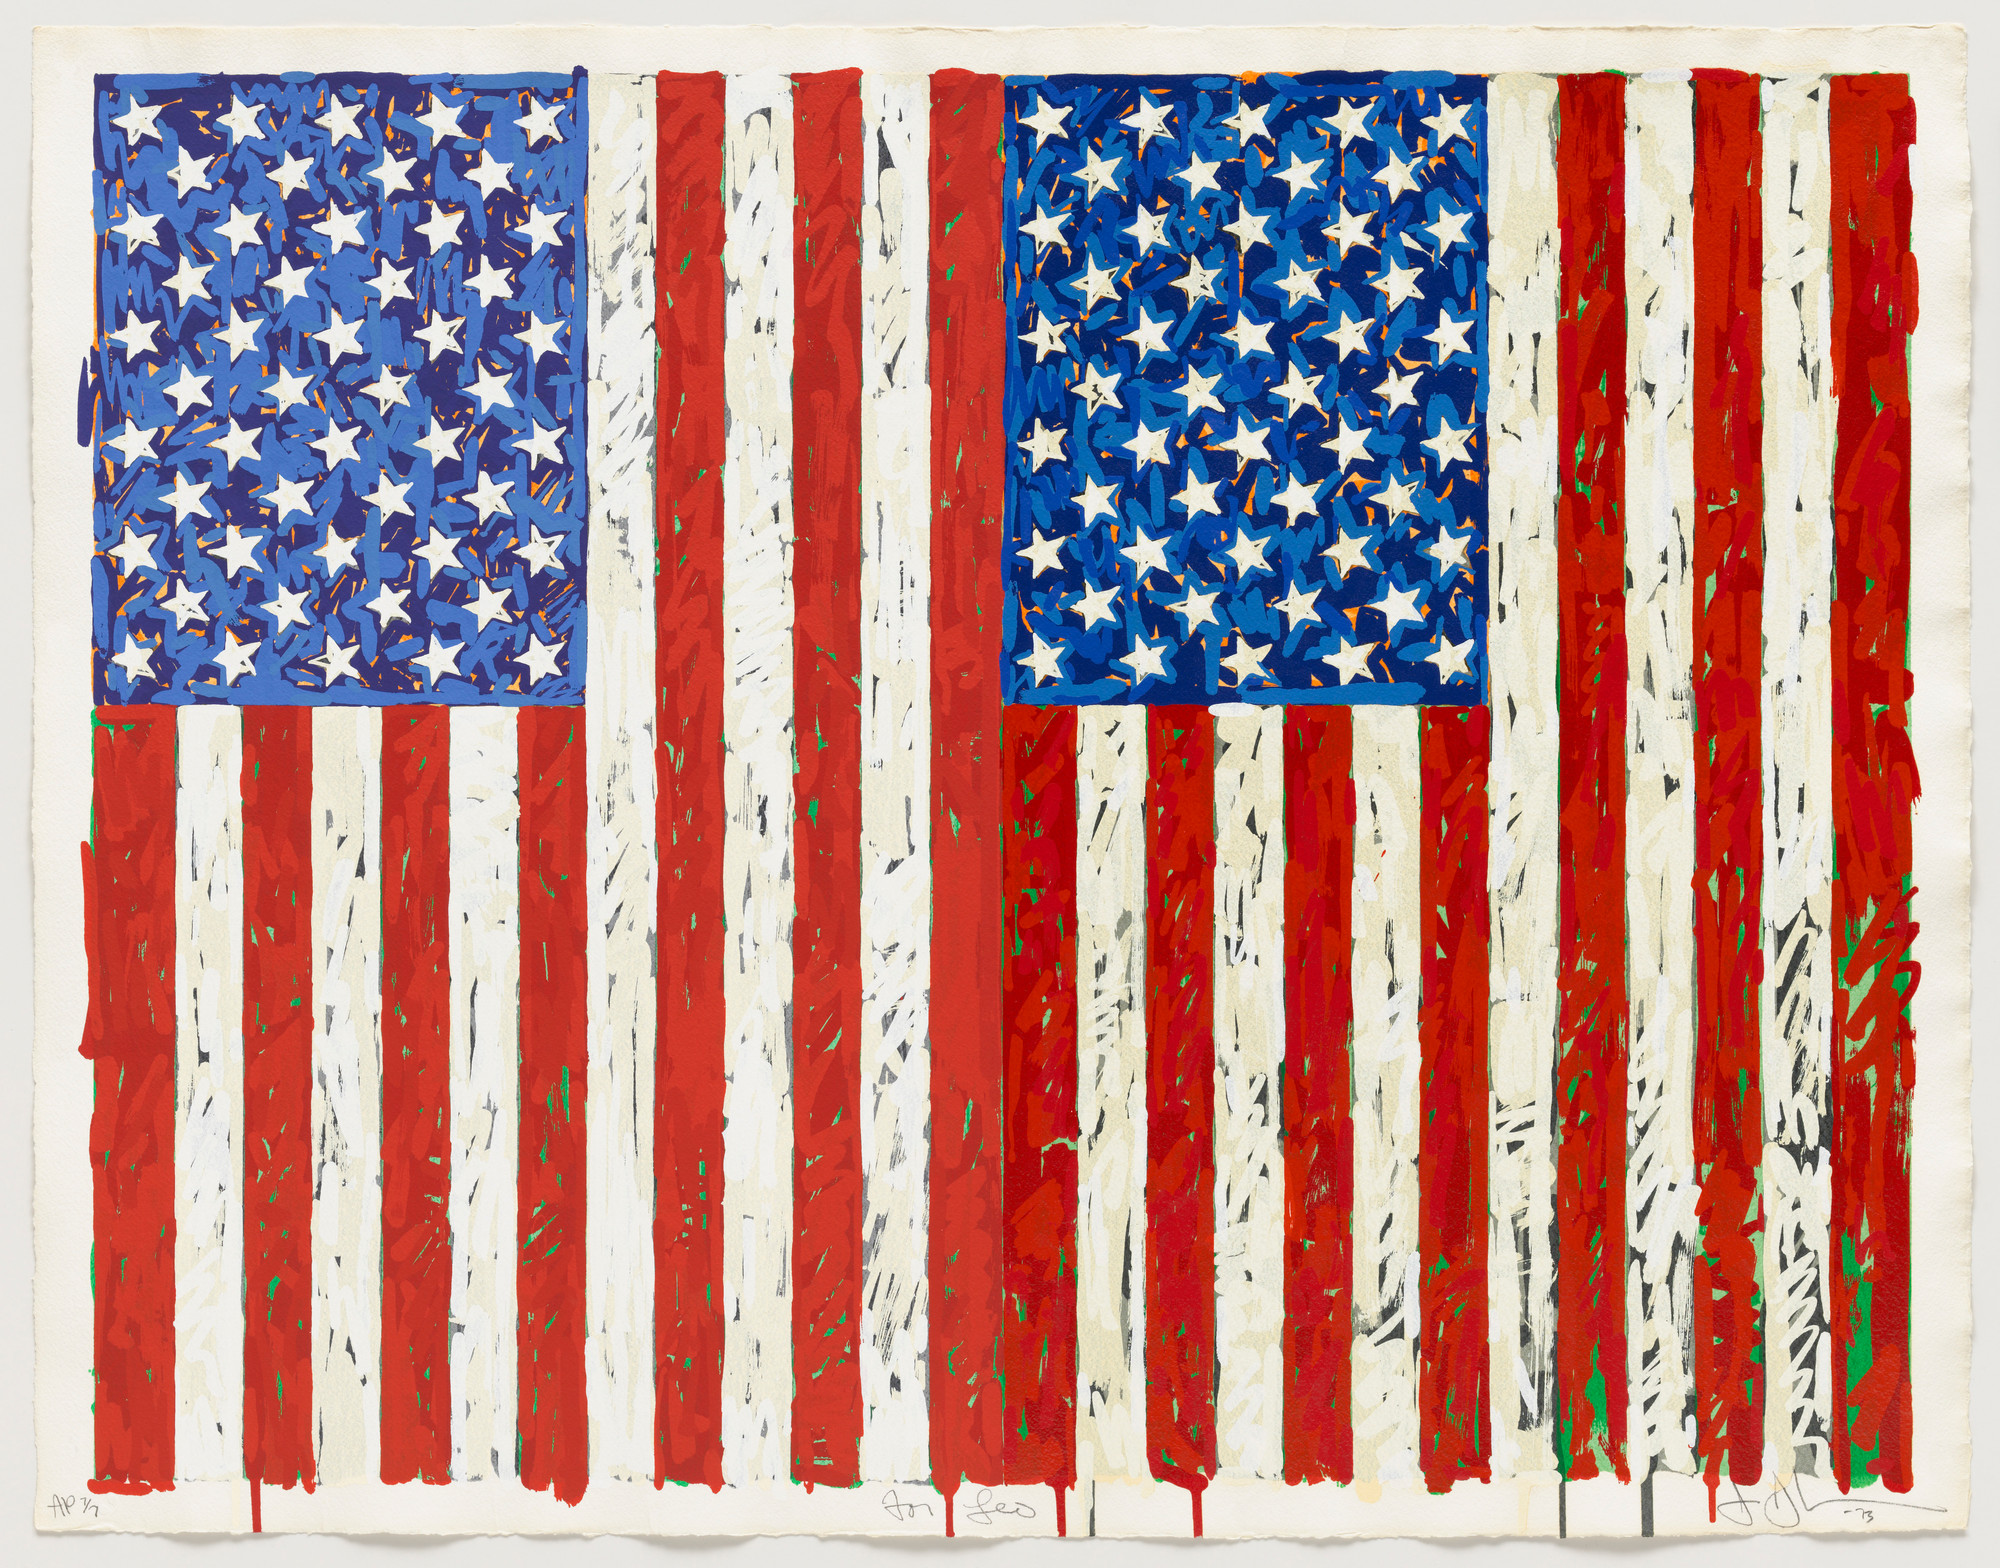 Jasper Johns. Flags I. 1973. Screenprint, 27 3⁄8 × 35 1/4″ (69.5 × 89.5 cm). Publisher: the artist and Simca Print Artists Inc., New York. Printer: Simca Print Artists Inc., New York. Edition: artist's proof before the edition of 65. Gift of Barbara Bertozzi Castelli, New York, 2011. © 2012 Jasper Johns/Licensed by VAGA, New York